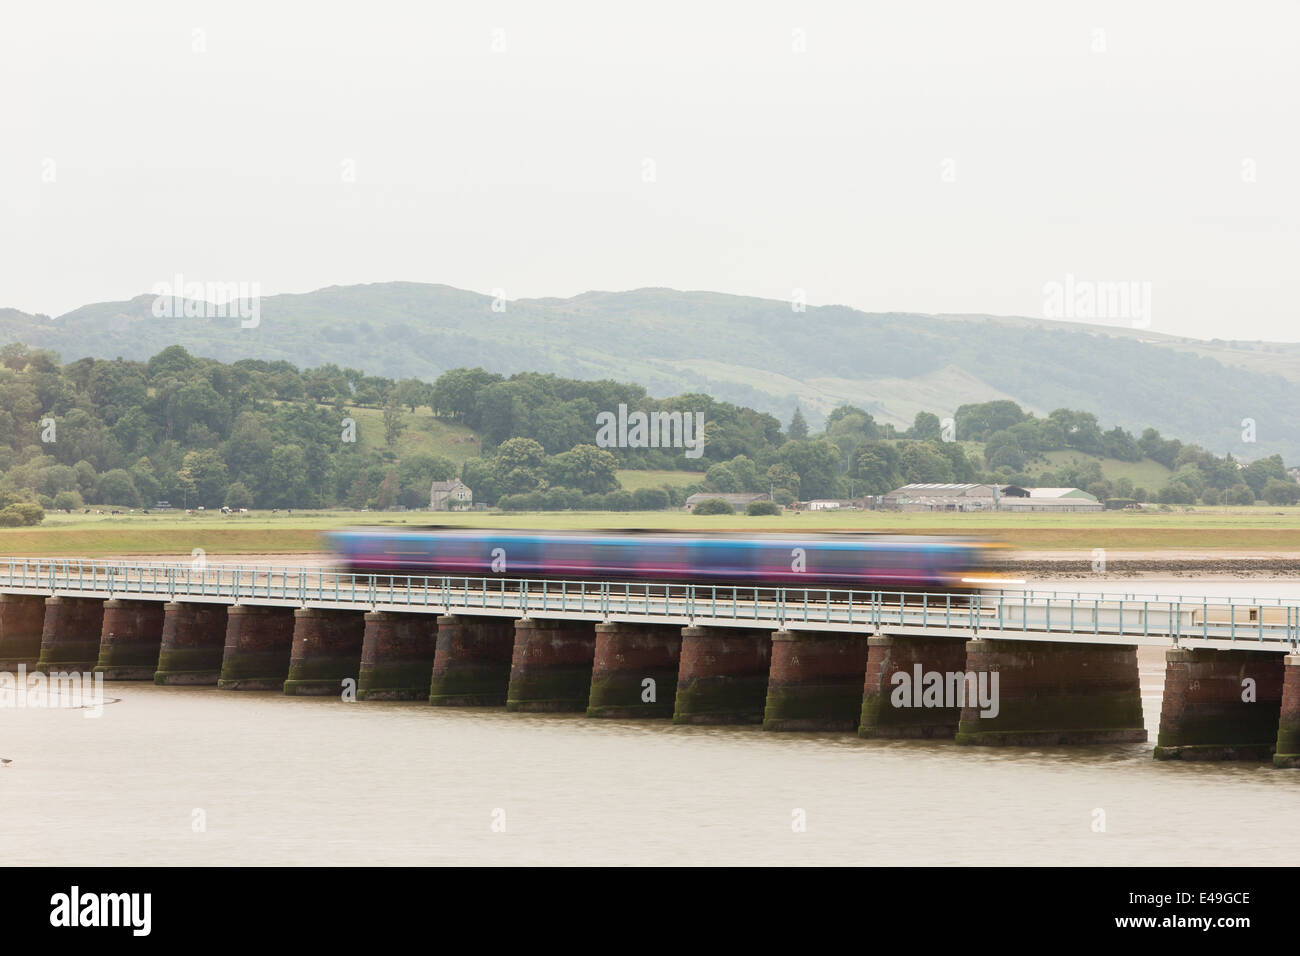 Diesel Multiple Unit (DMU) Class 156 operated by Northern Rail crossing the Kent Viaduct, Cumbria (Long exposure) - Stock Image